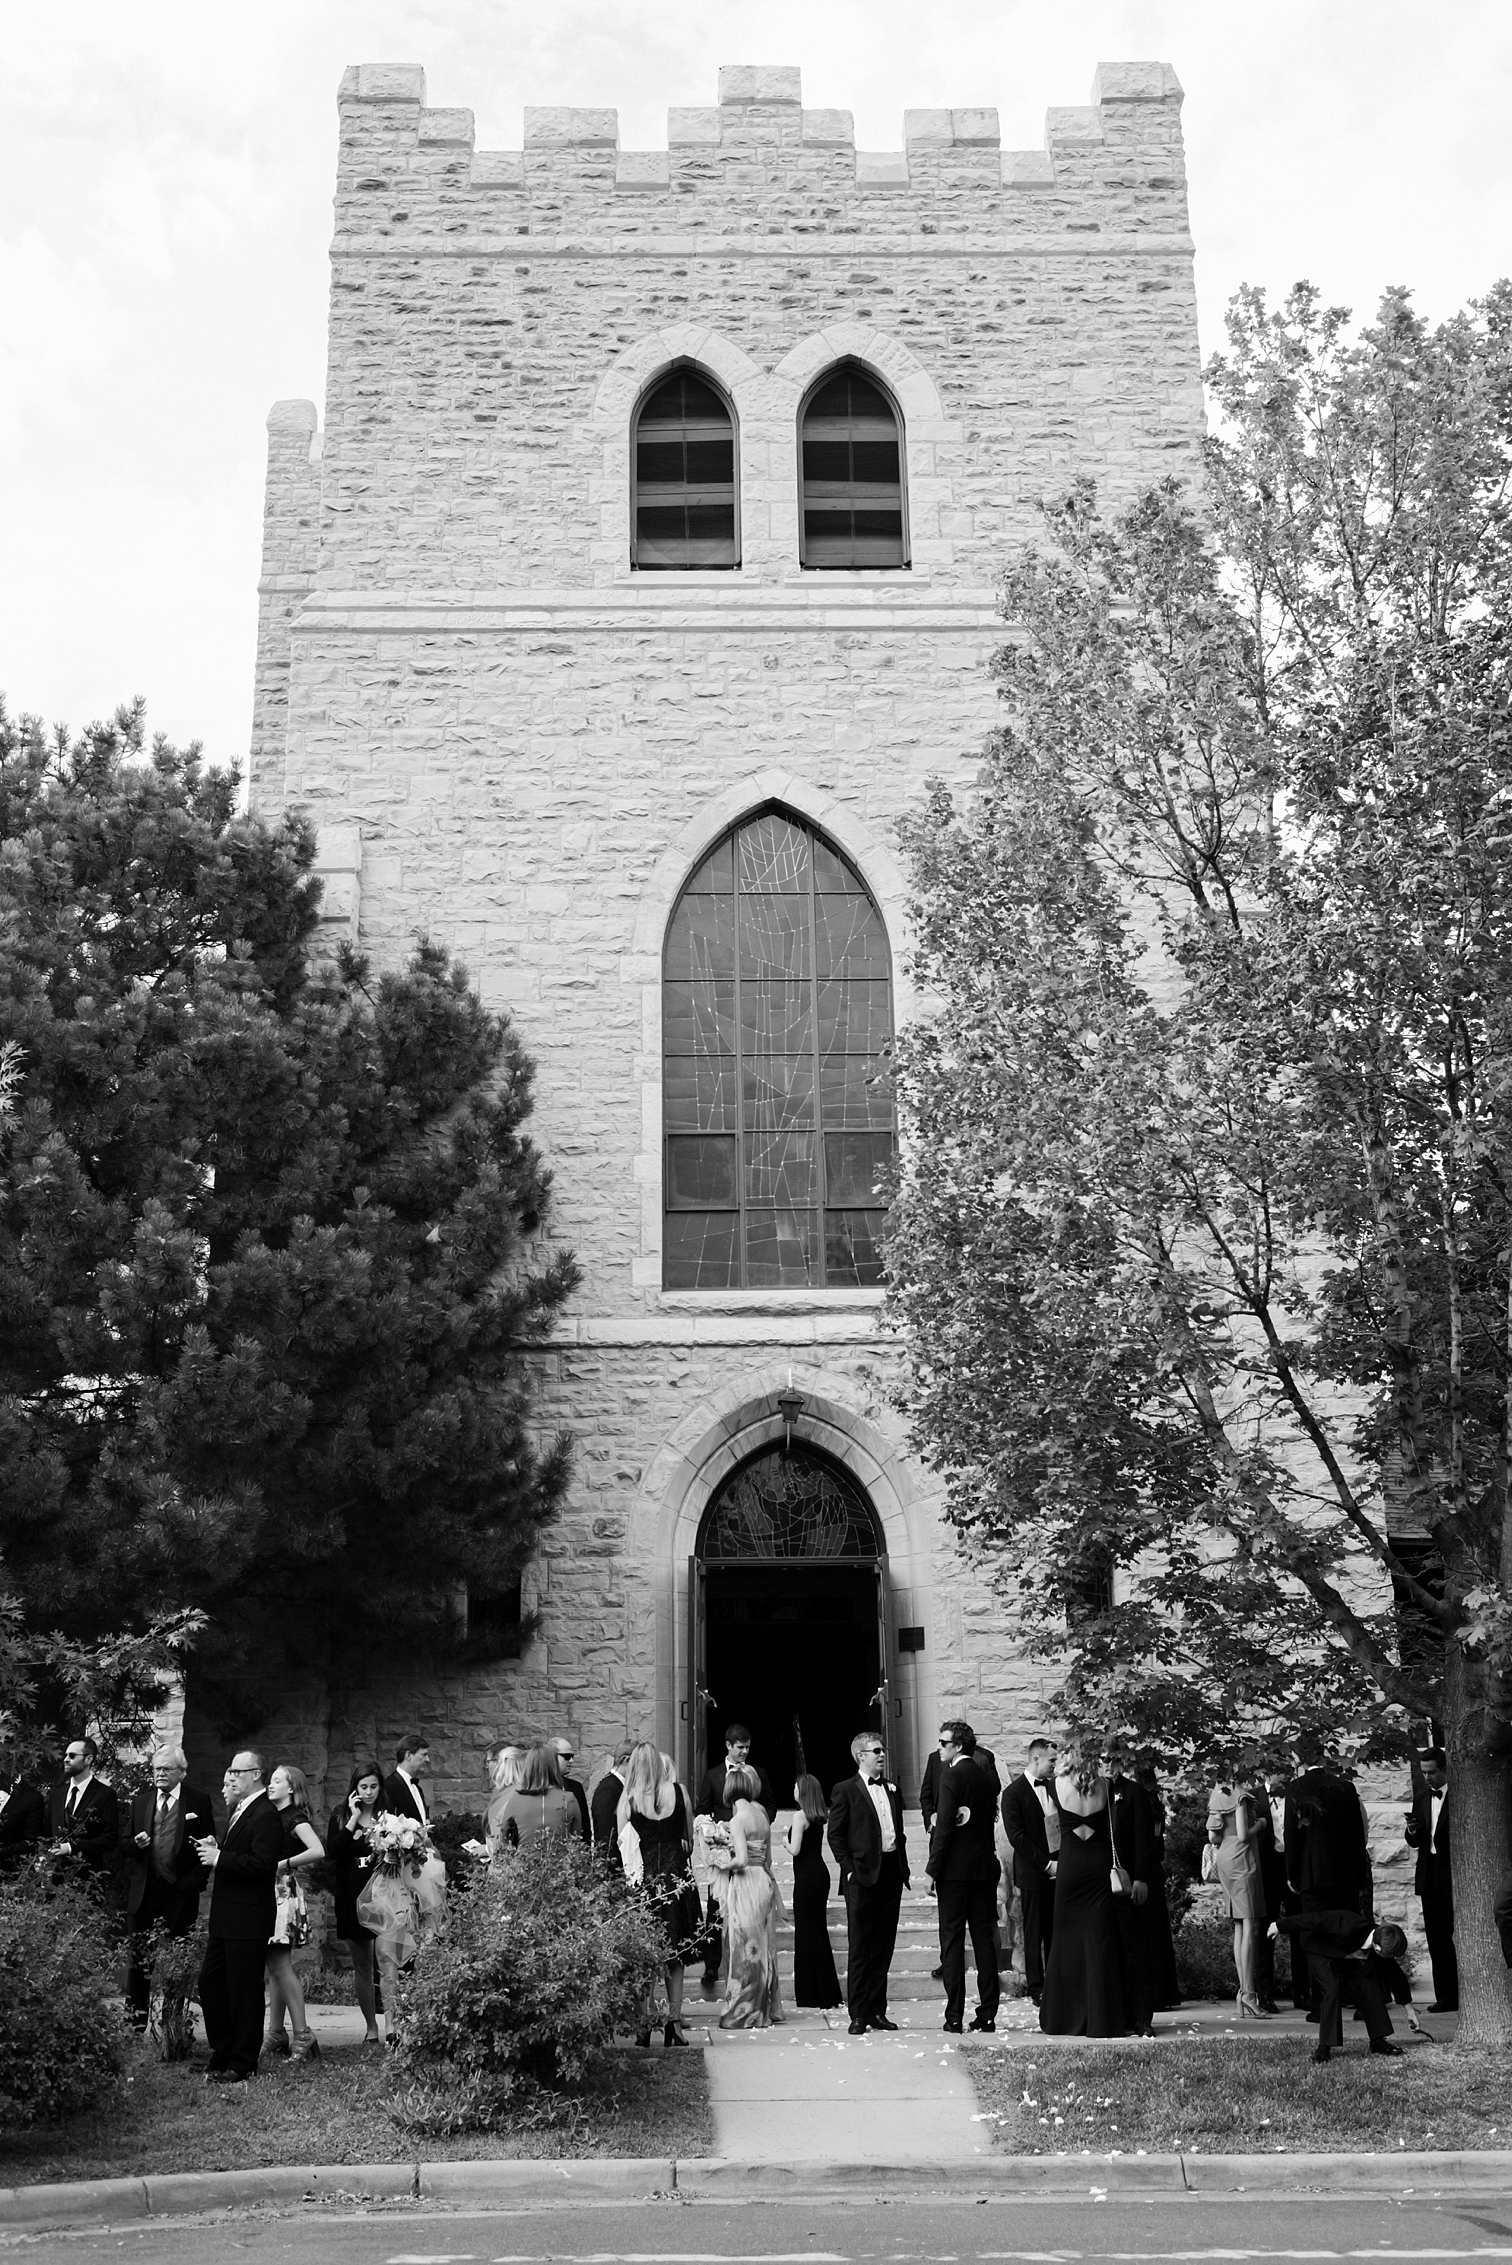 Boulder Weddings, Colorado Wedding Photographers, Denver Wedding Photographers, Film Photographers, Rolleiflex Camera, Colorado Weddings, Danielle DeFiore Photography, Denver Weddings, Boulder County Club Weddings, Classic Weddings In Colorado, Black Tie Weddings, Country Club Weddings, Church Weddings In Colorado, Best Wedding Photographers In Colorado, Chautauqua Park, Church Wedding In Boulder, Church Ceremony In Boulder